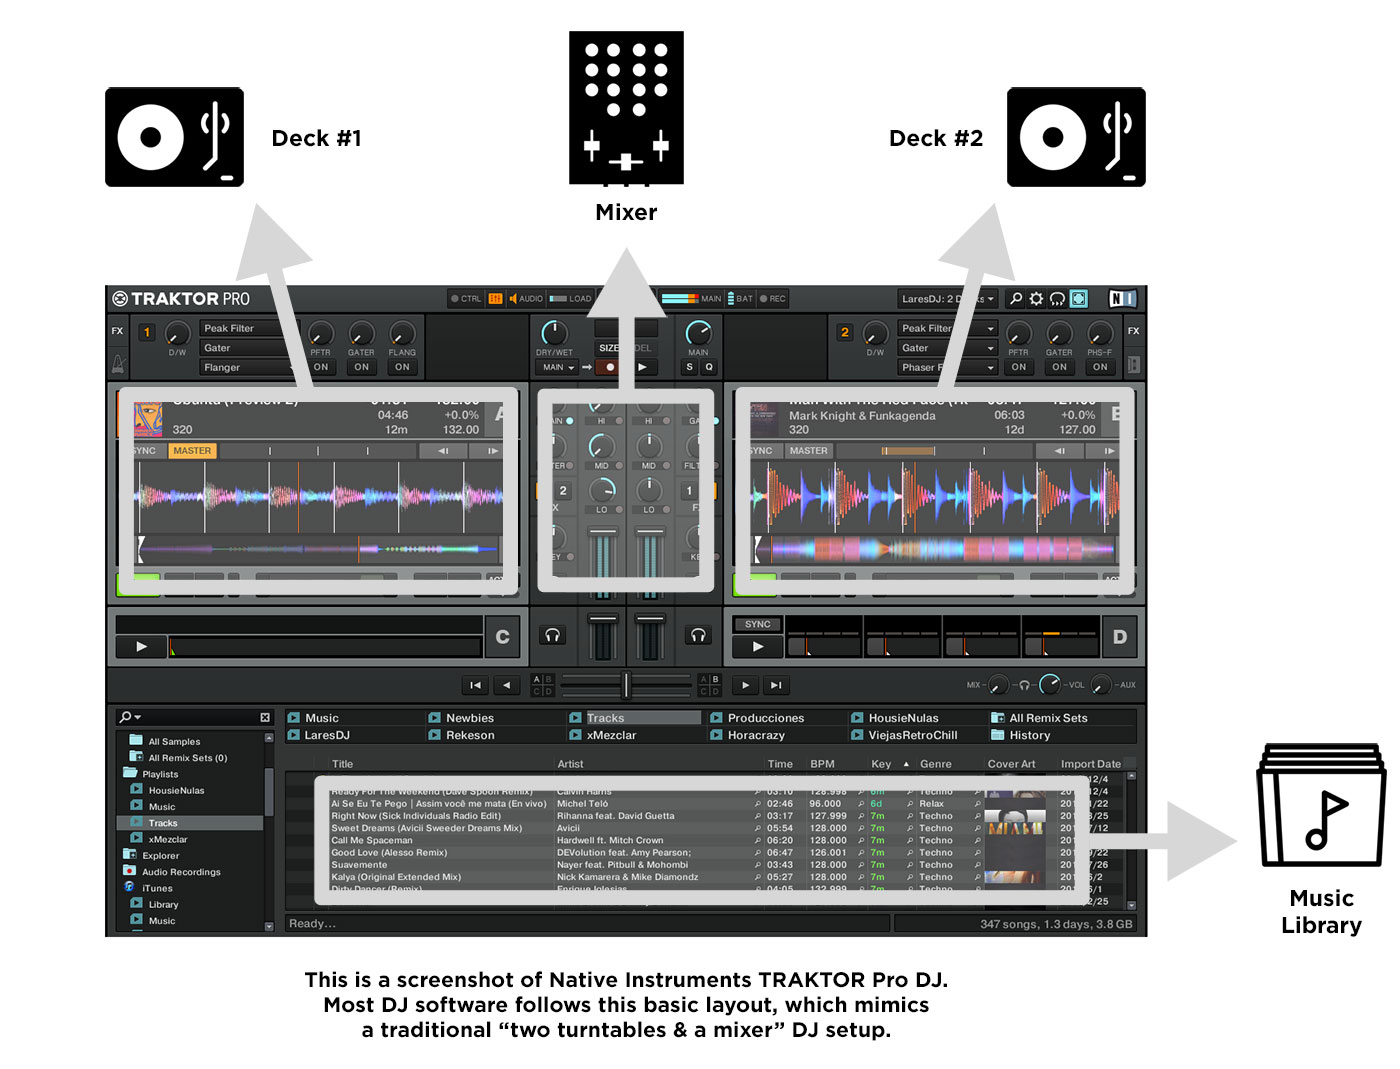 Best DJ Software - Top 5 Choices for Digital DJing [2020]